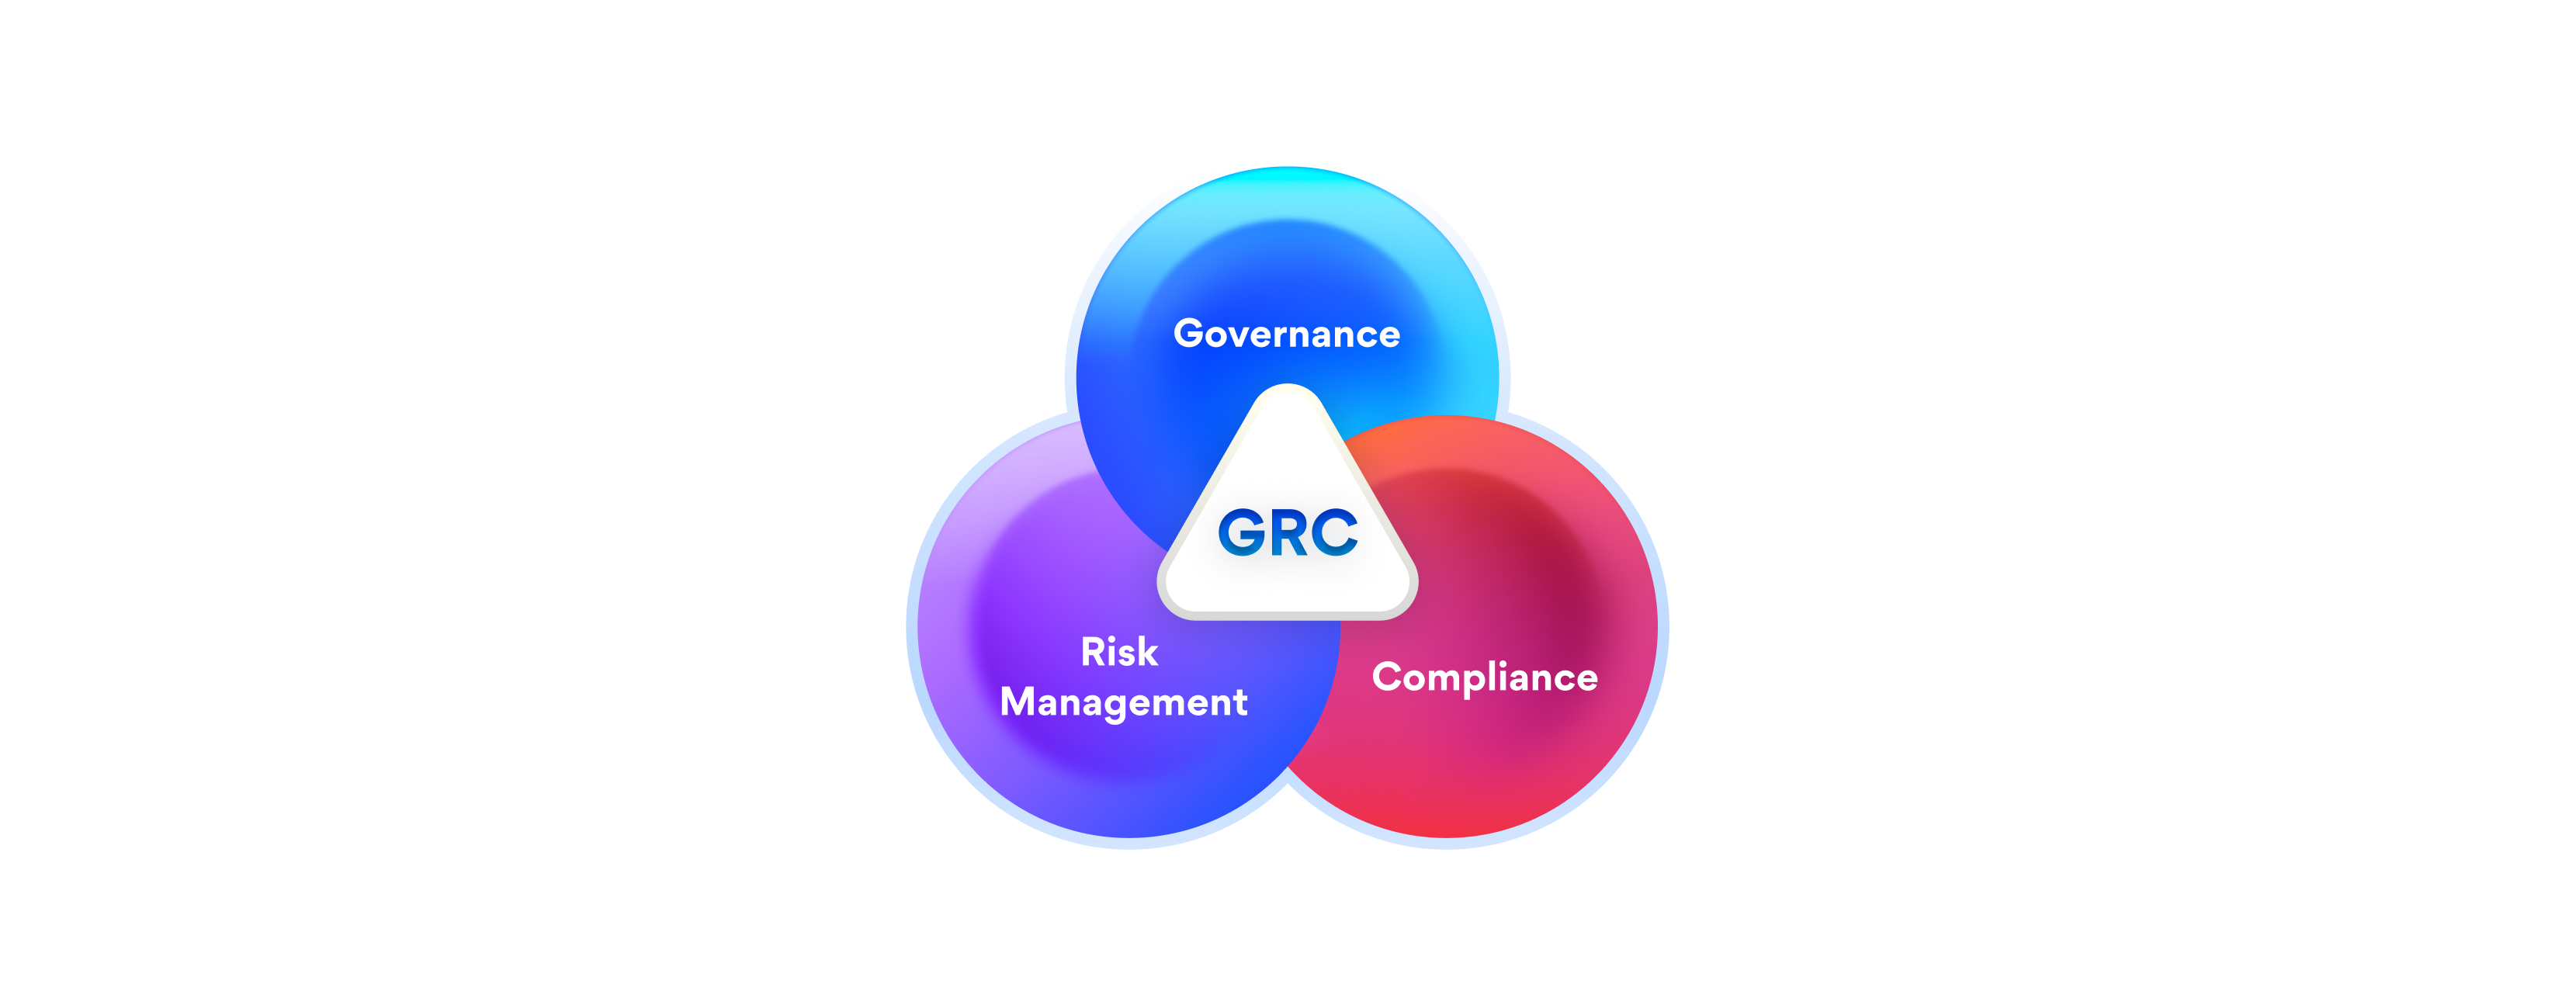 What Is a GRC Platform? What Does It Do?